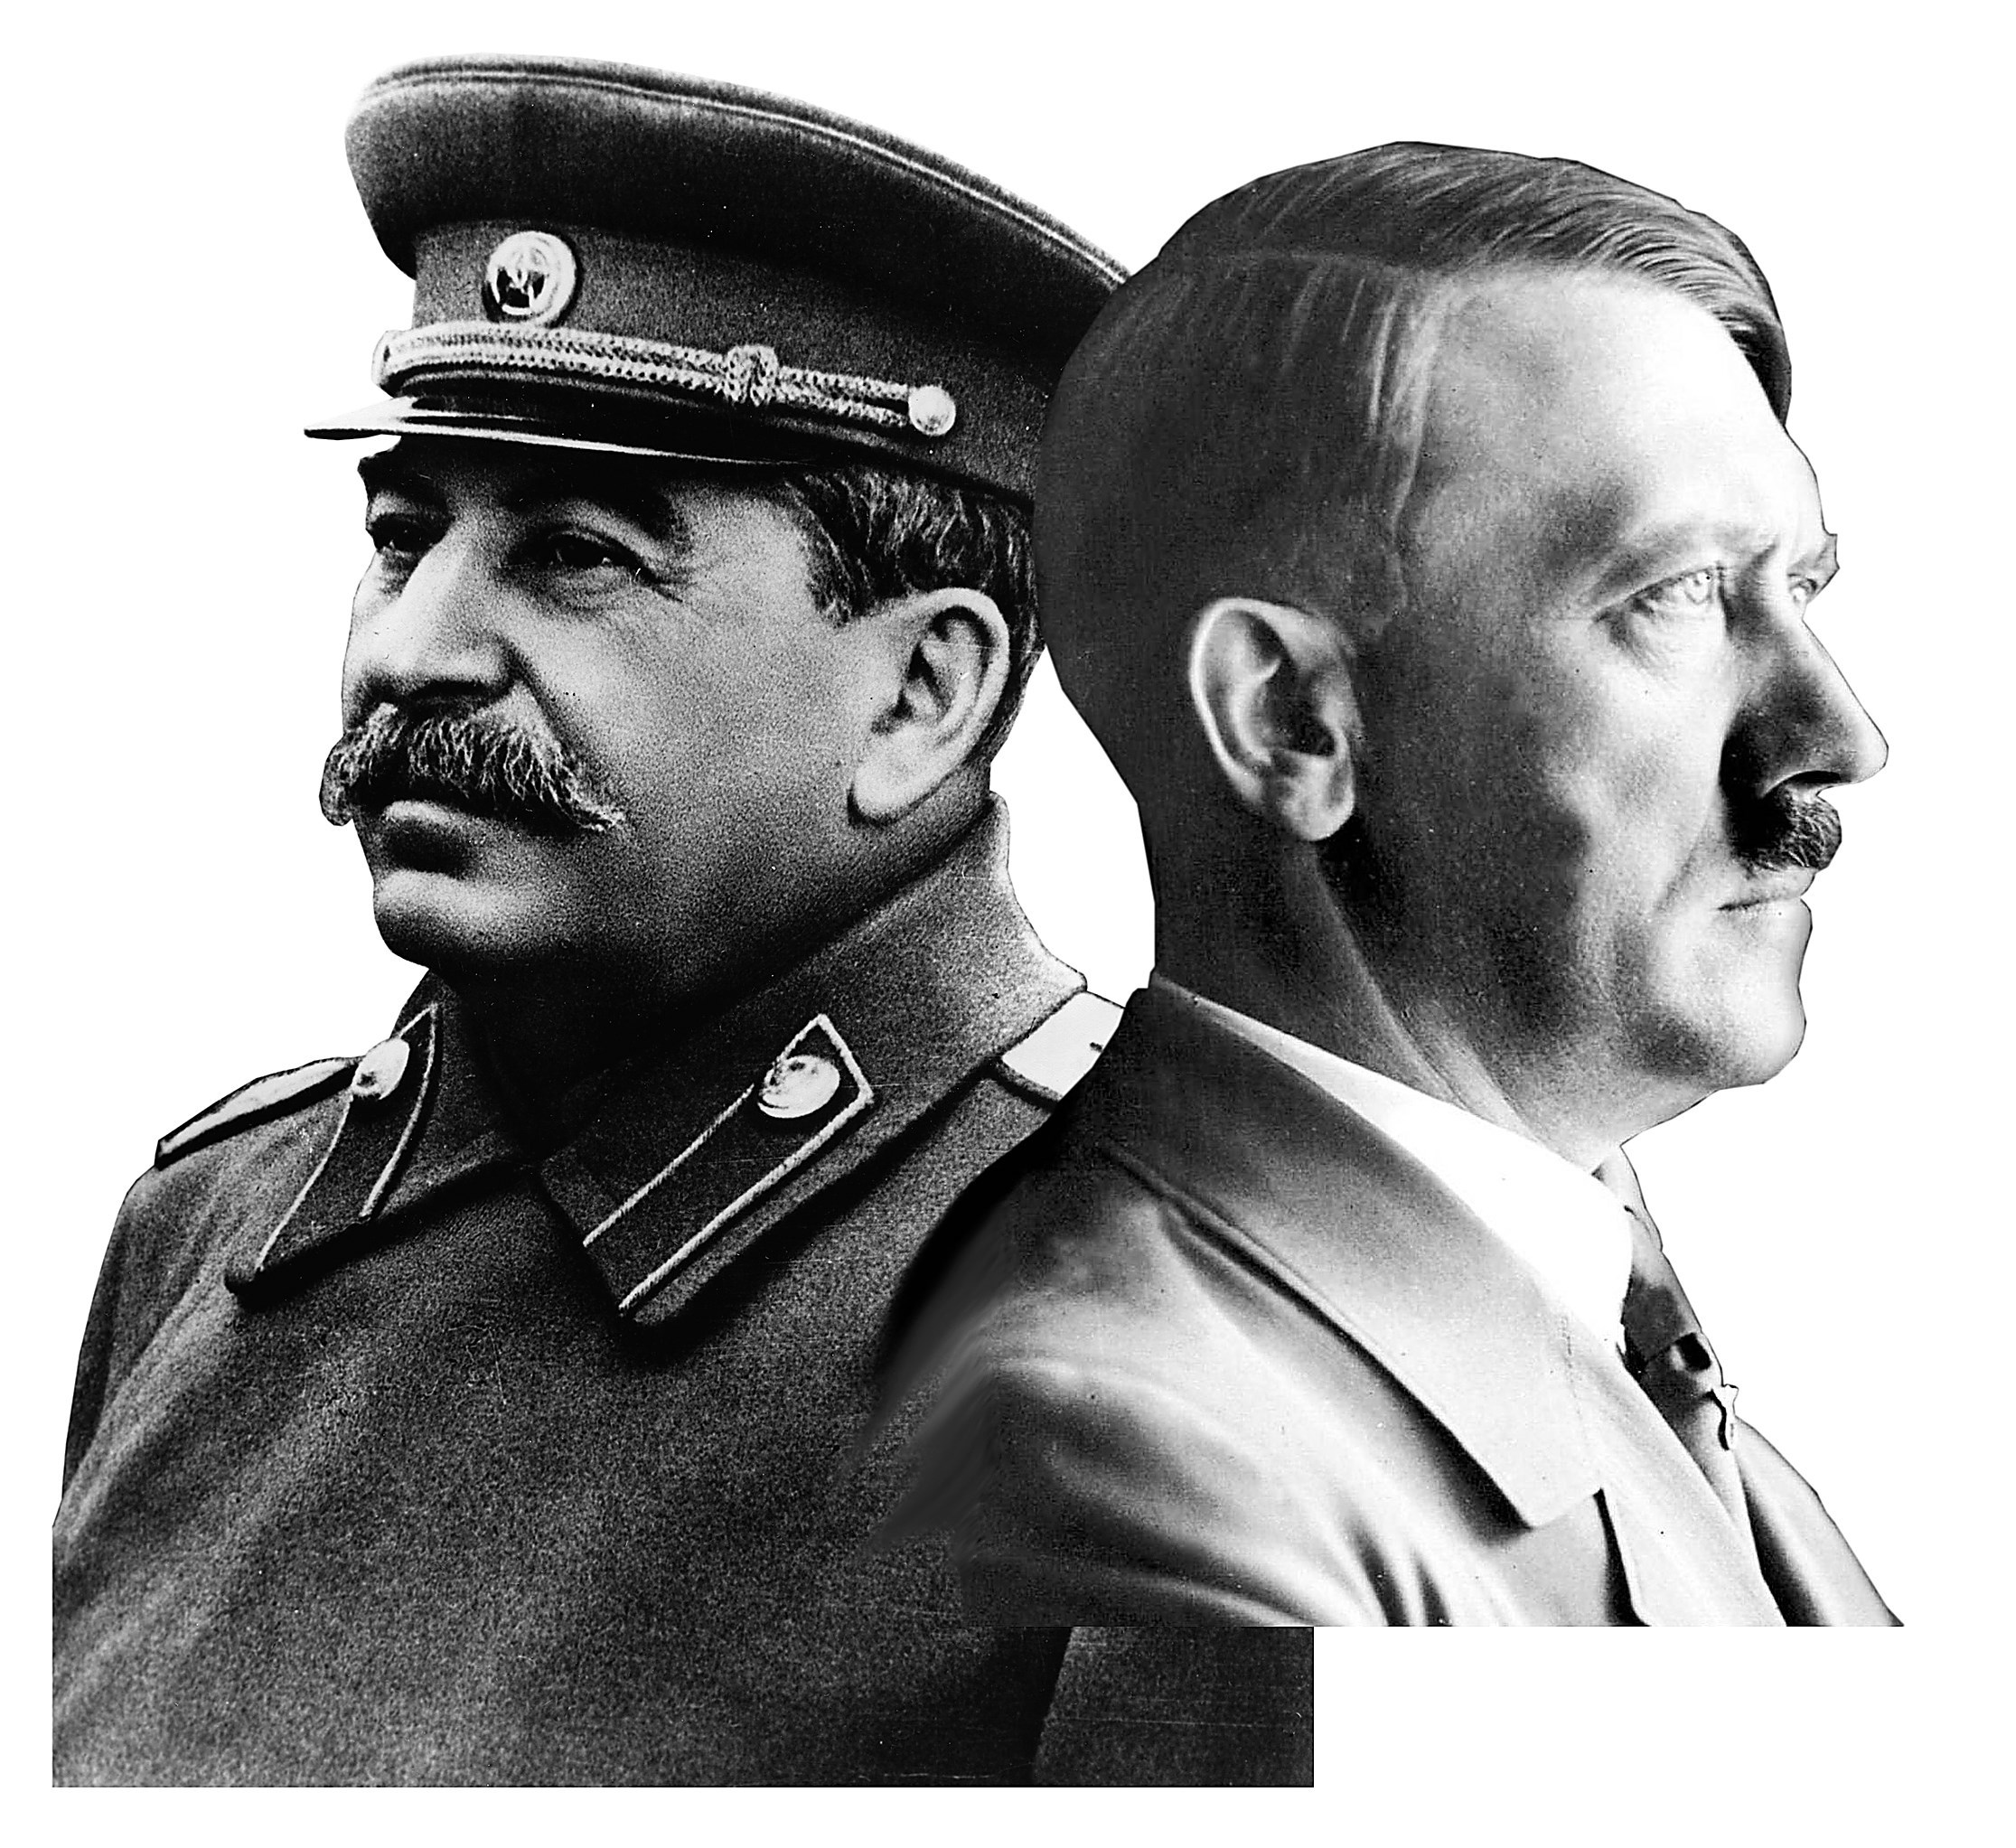 an introduction to the life and political history of joseph stalin Stalin's early life joseph stalin the soviet union and called for the gradual introduction of industrialization stalin prevailed and later political history.